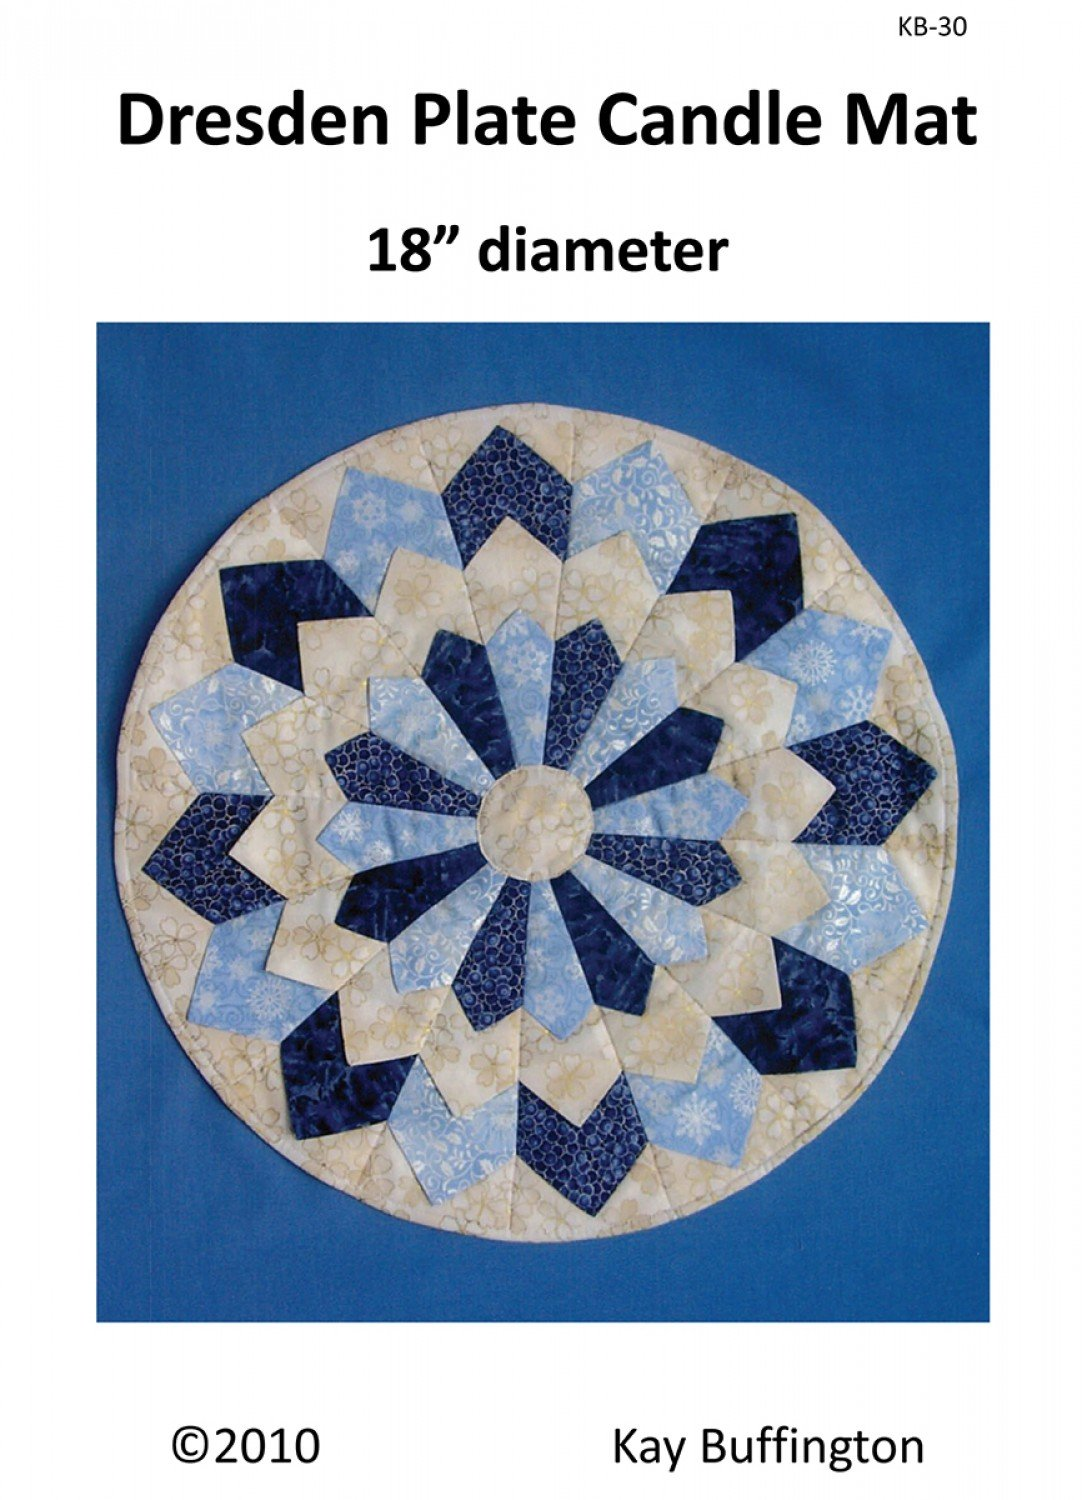 Dresden Plate Candle Mat Pattern KB-30